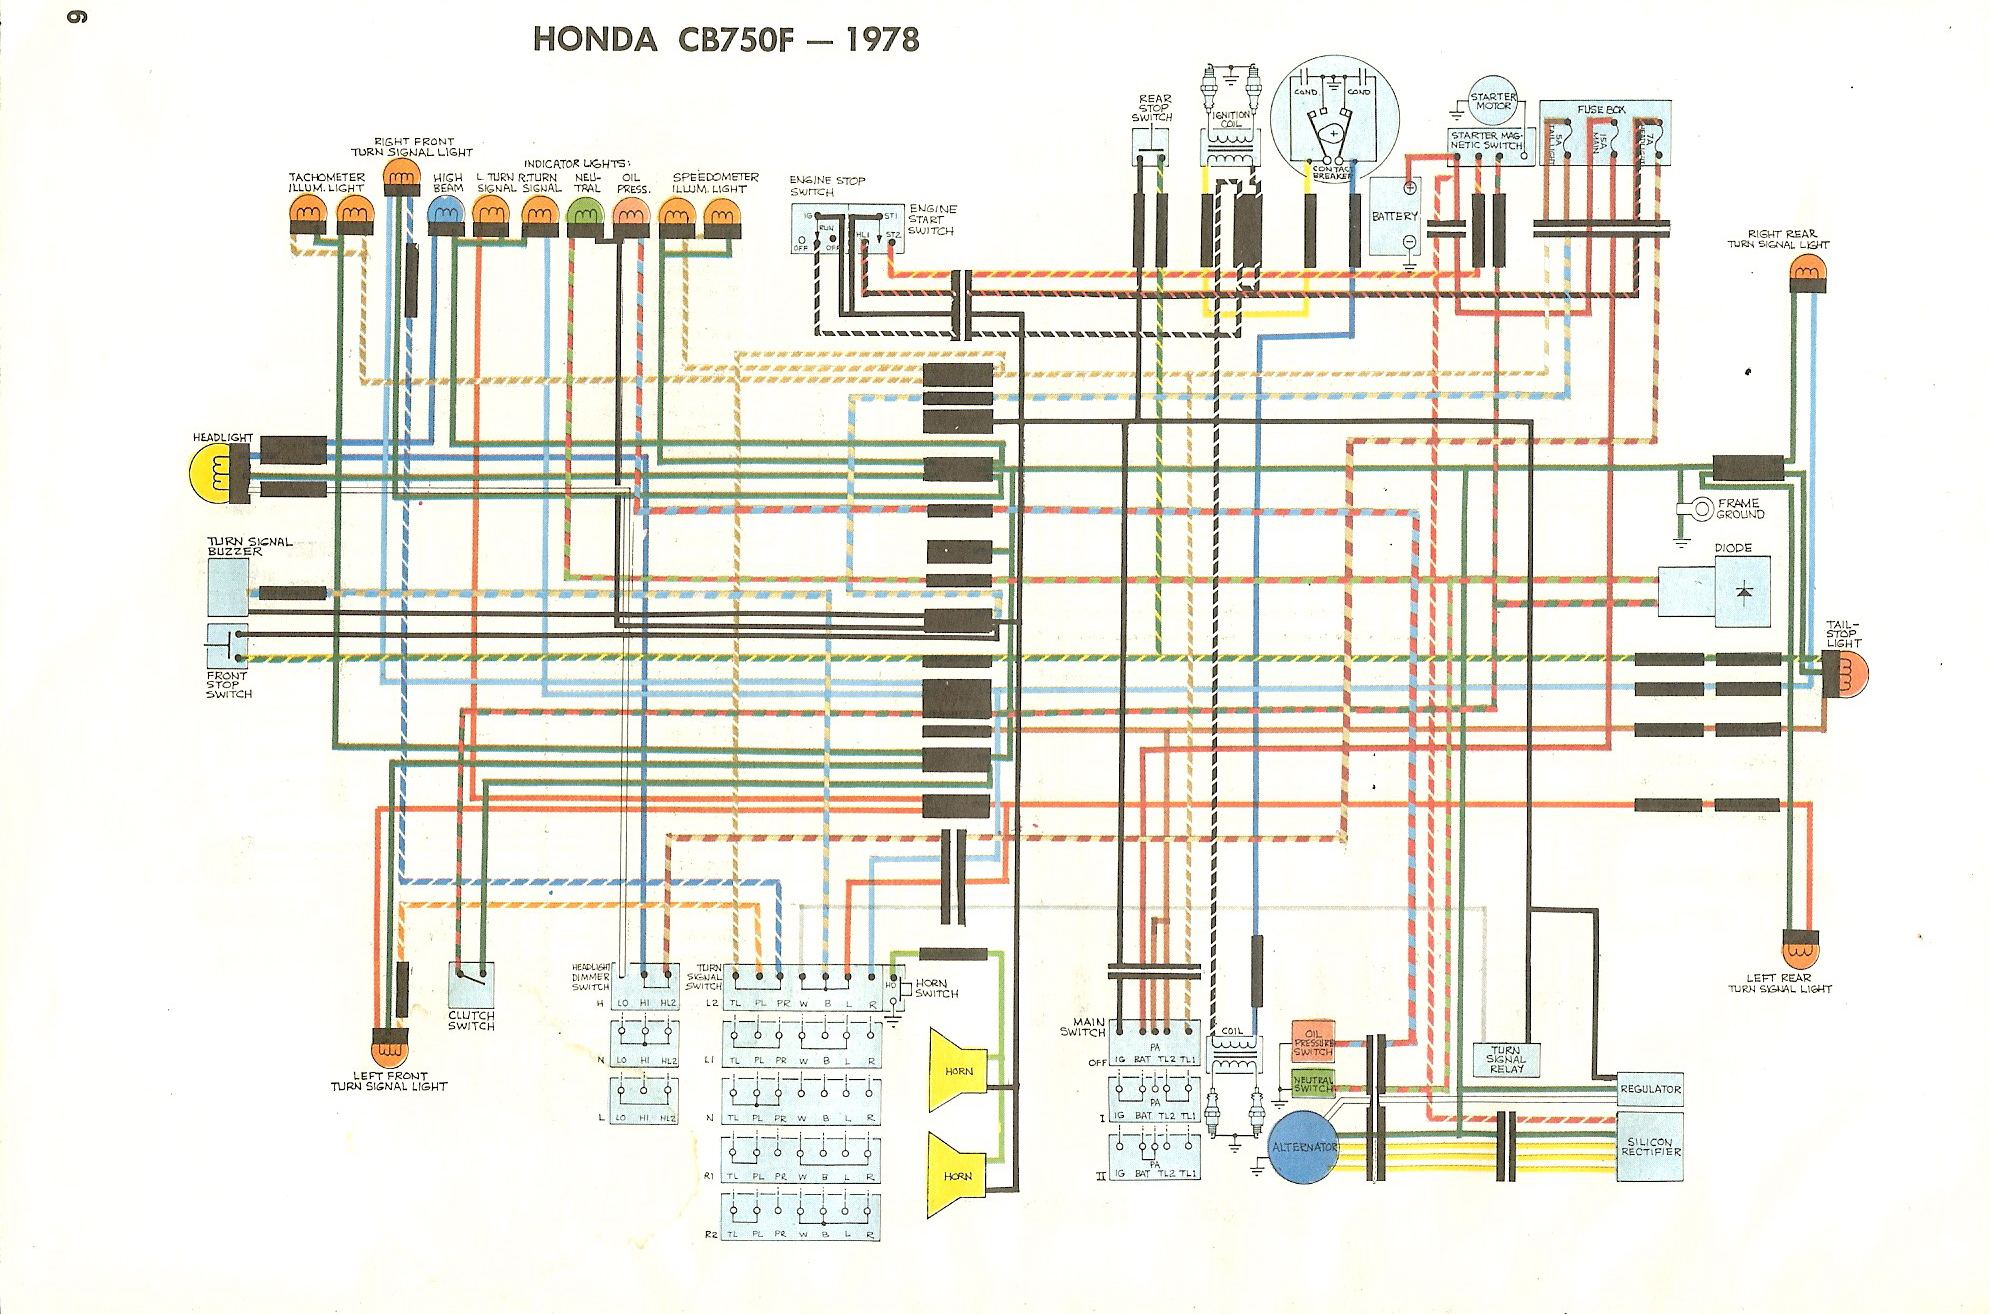 Honda 750 Wiring Diagram Wiring Diagram Data Val